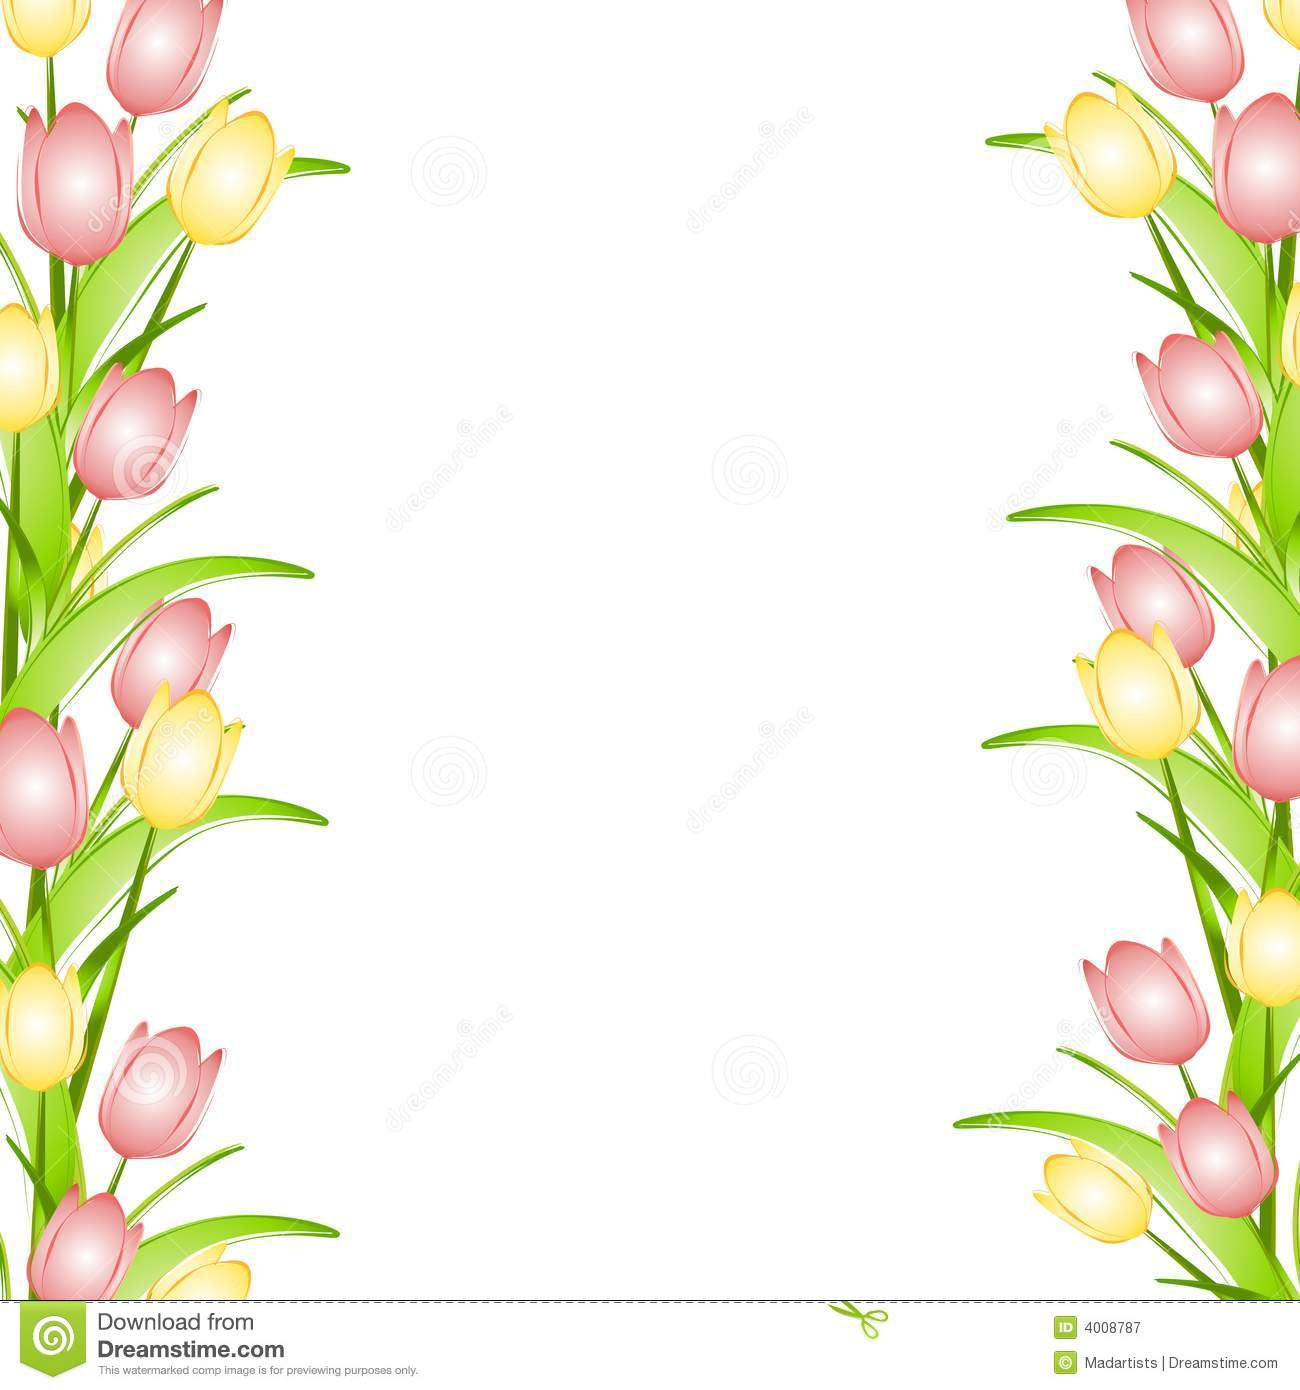 1300x1390 Images Of Spring Flowers Border Header